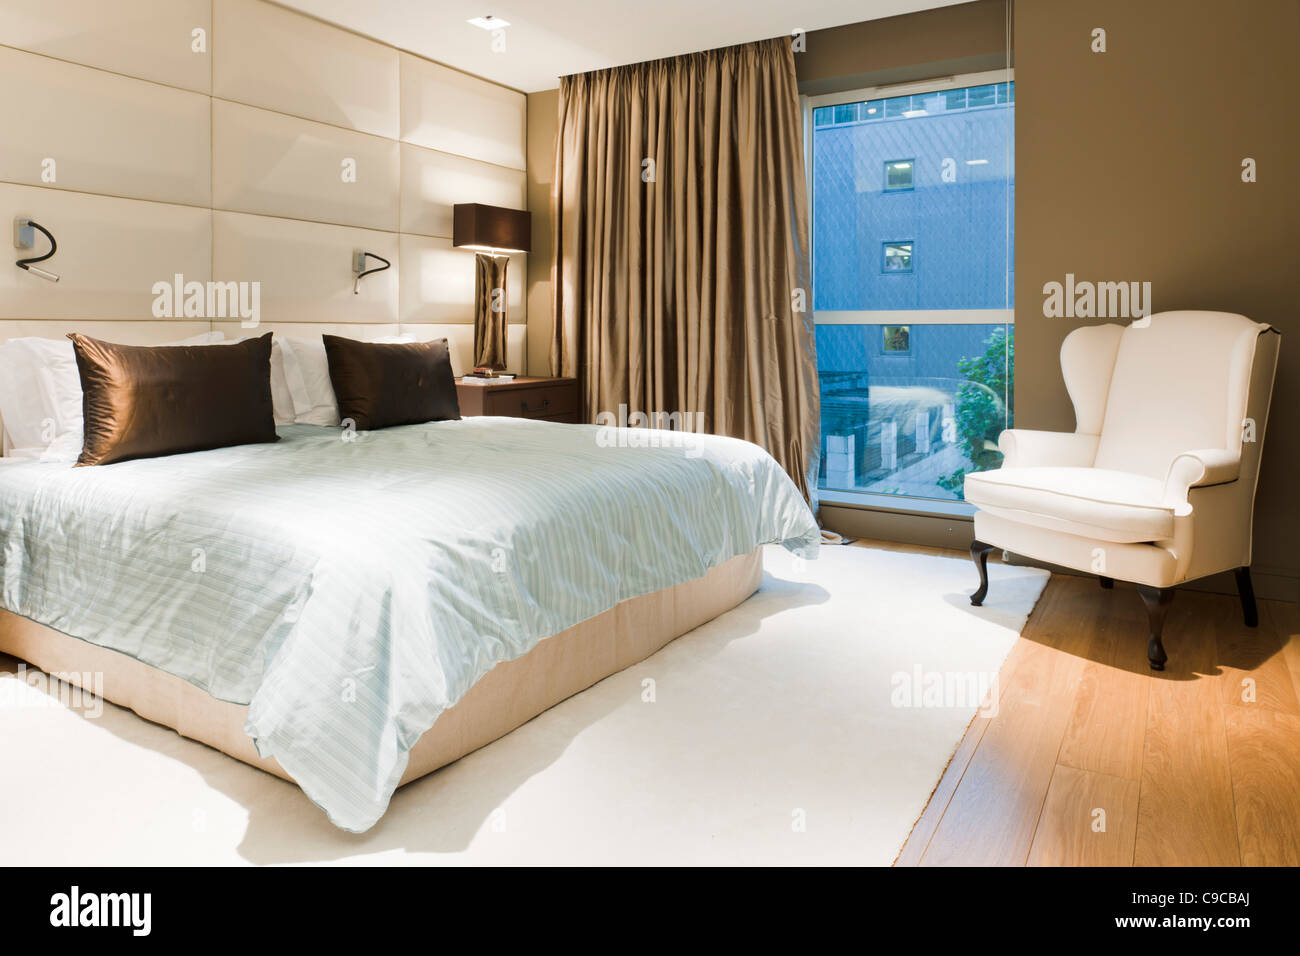 Contemporary Bedroom Interior in London Apartment - Stock Image